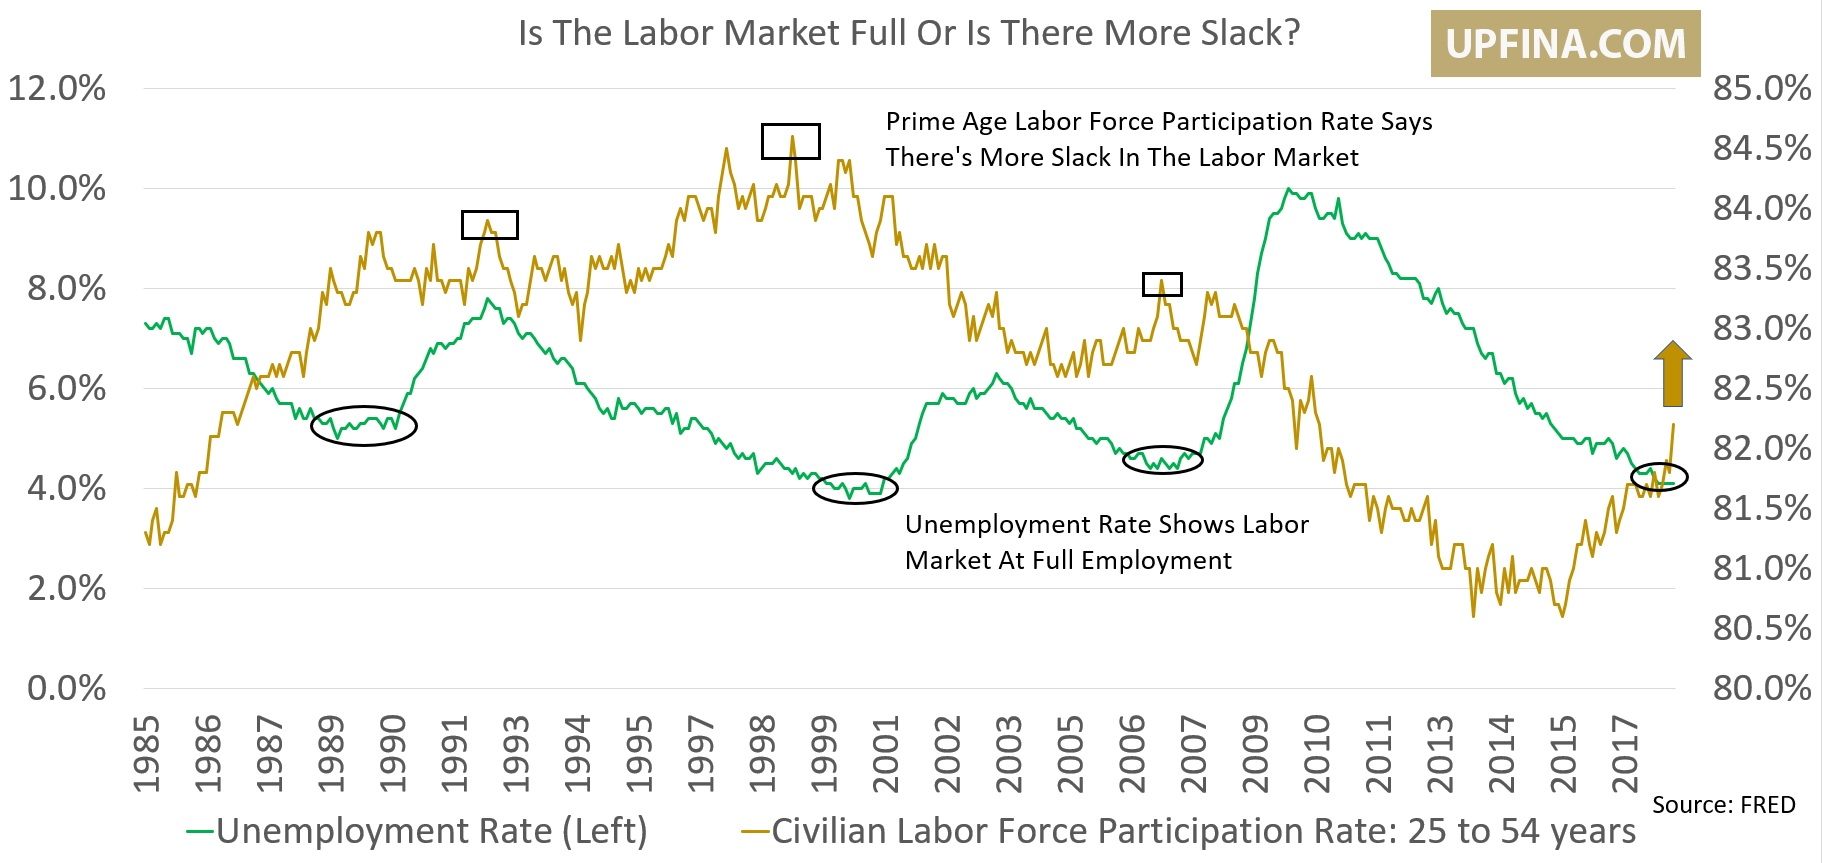 Long-Term Unemployment Rate Is 20%